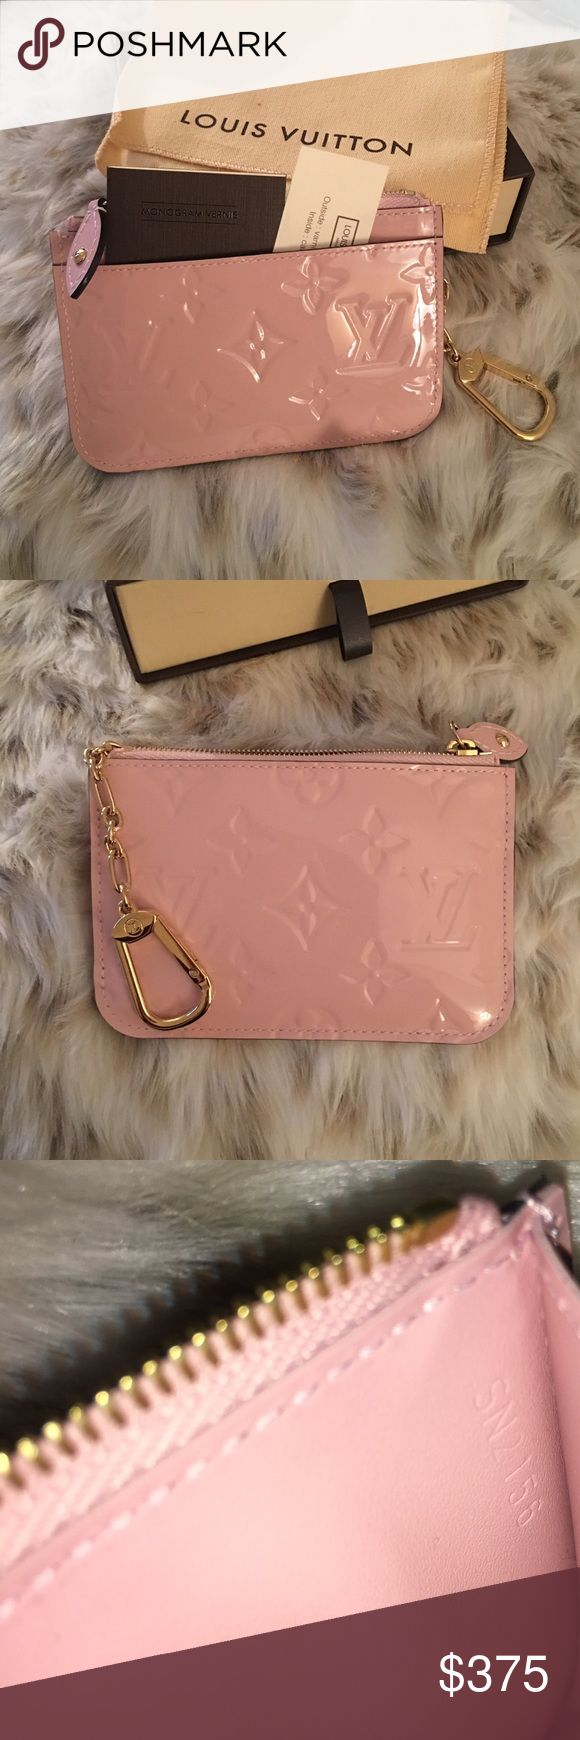 Louis Vuitton rose ballerine key pouch cles vernis LOWEST IS $375 with free ship on Ⓜ️ercari. If you want it on here I'll have to add 20%. Selling my Louis Vuitton Vernis key pouch cles in the rose ballerine color This is brand new. Comes with Pouch Dust bag Box Receipt Care card Booklet Ships same day Louis Vuitton Bags Wallets